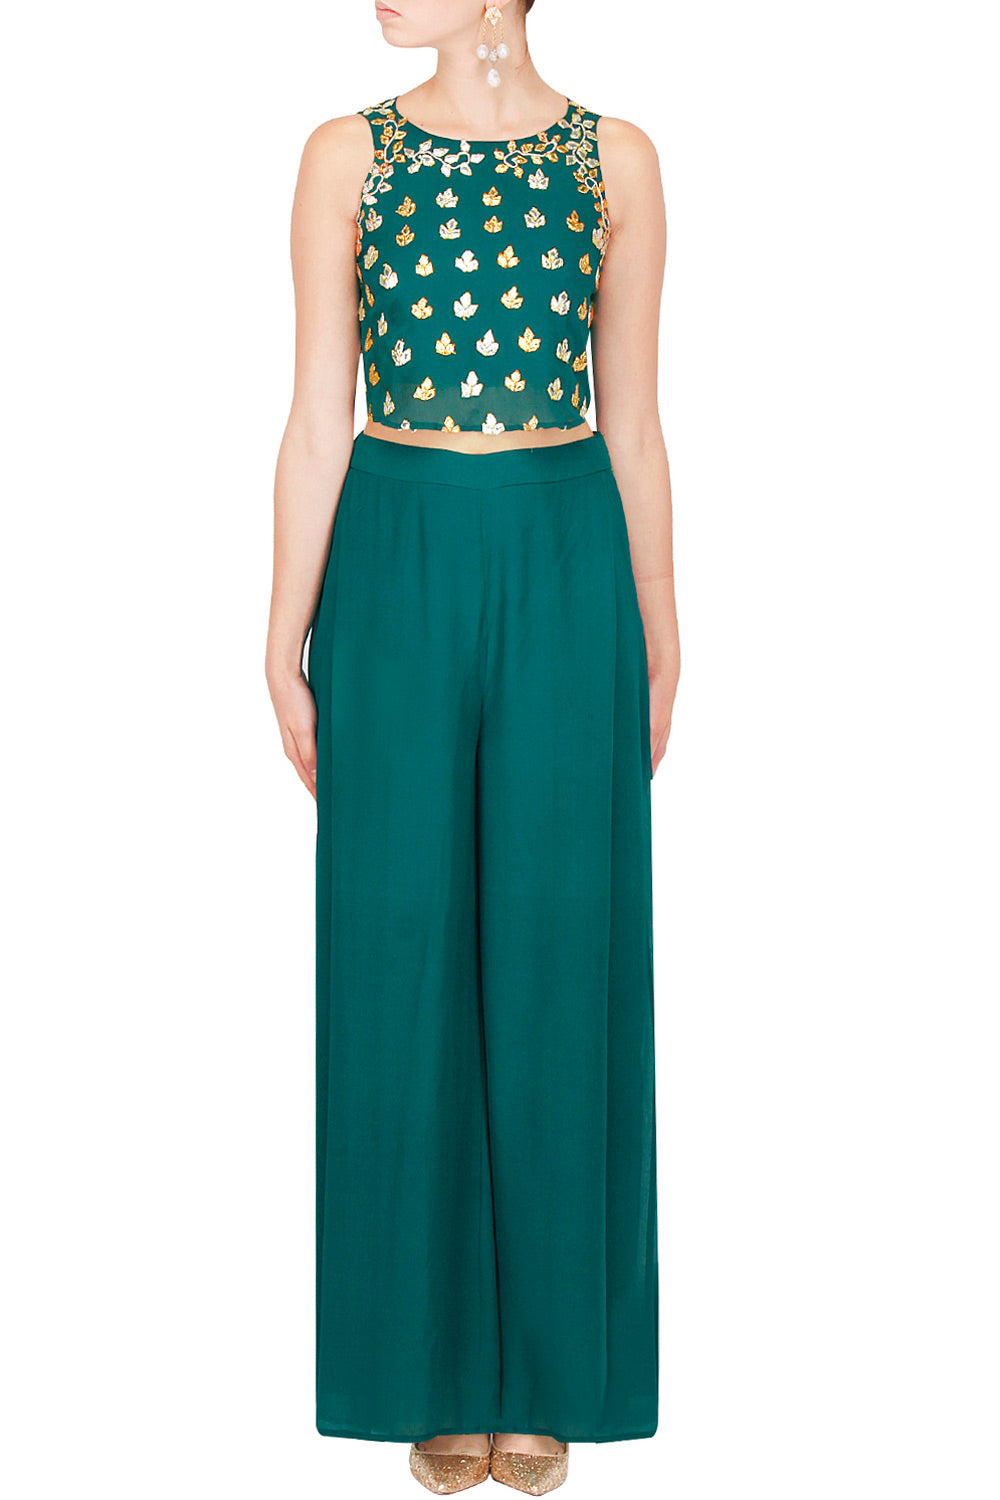 Teal Green Crop top set - The Grand Trunk